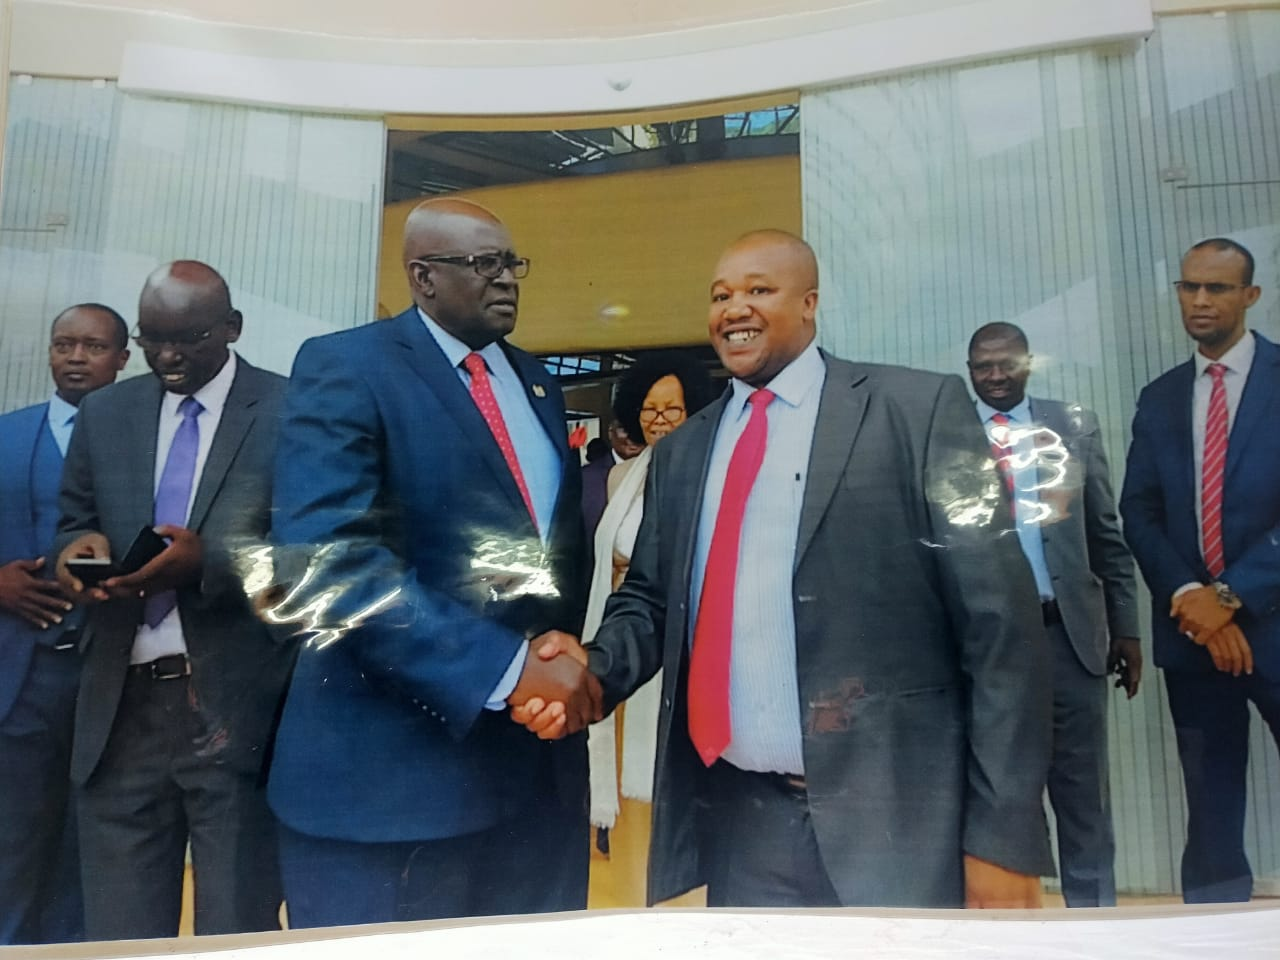 Wambugu wa Kamau with Education CS Prof. George Magoha.